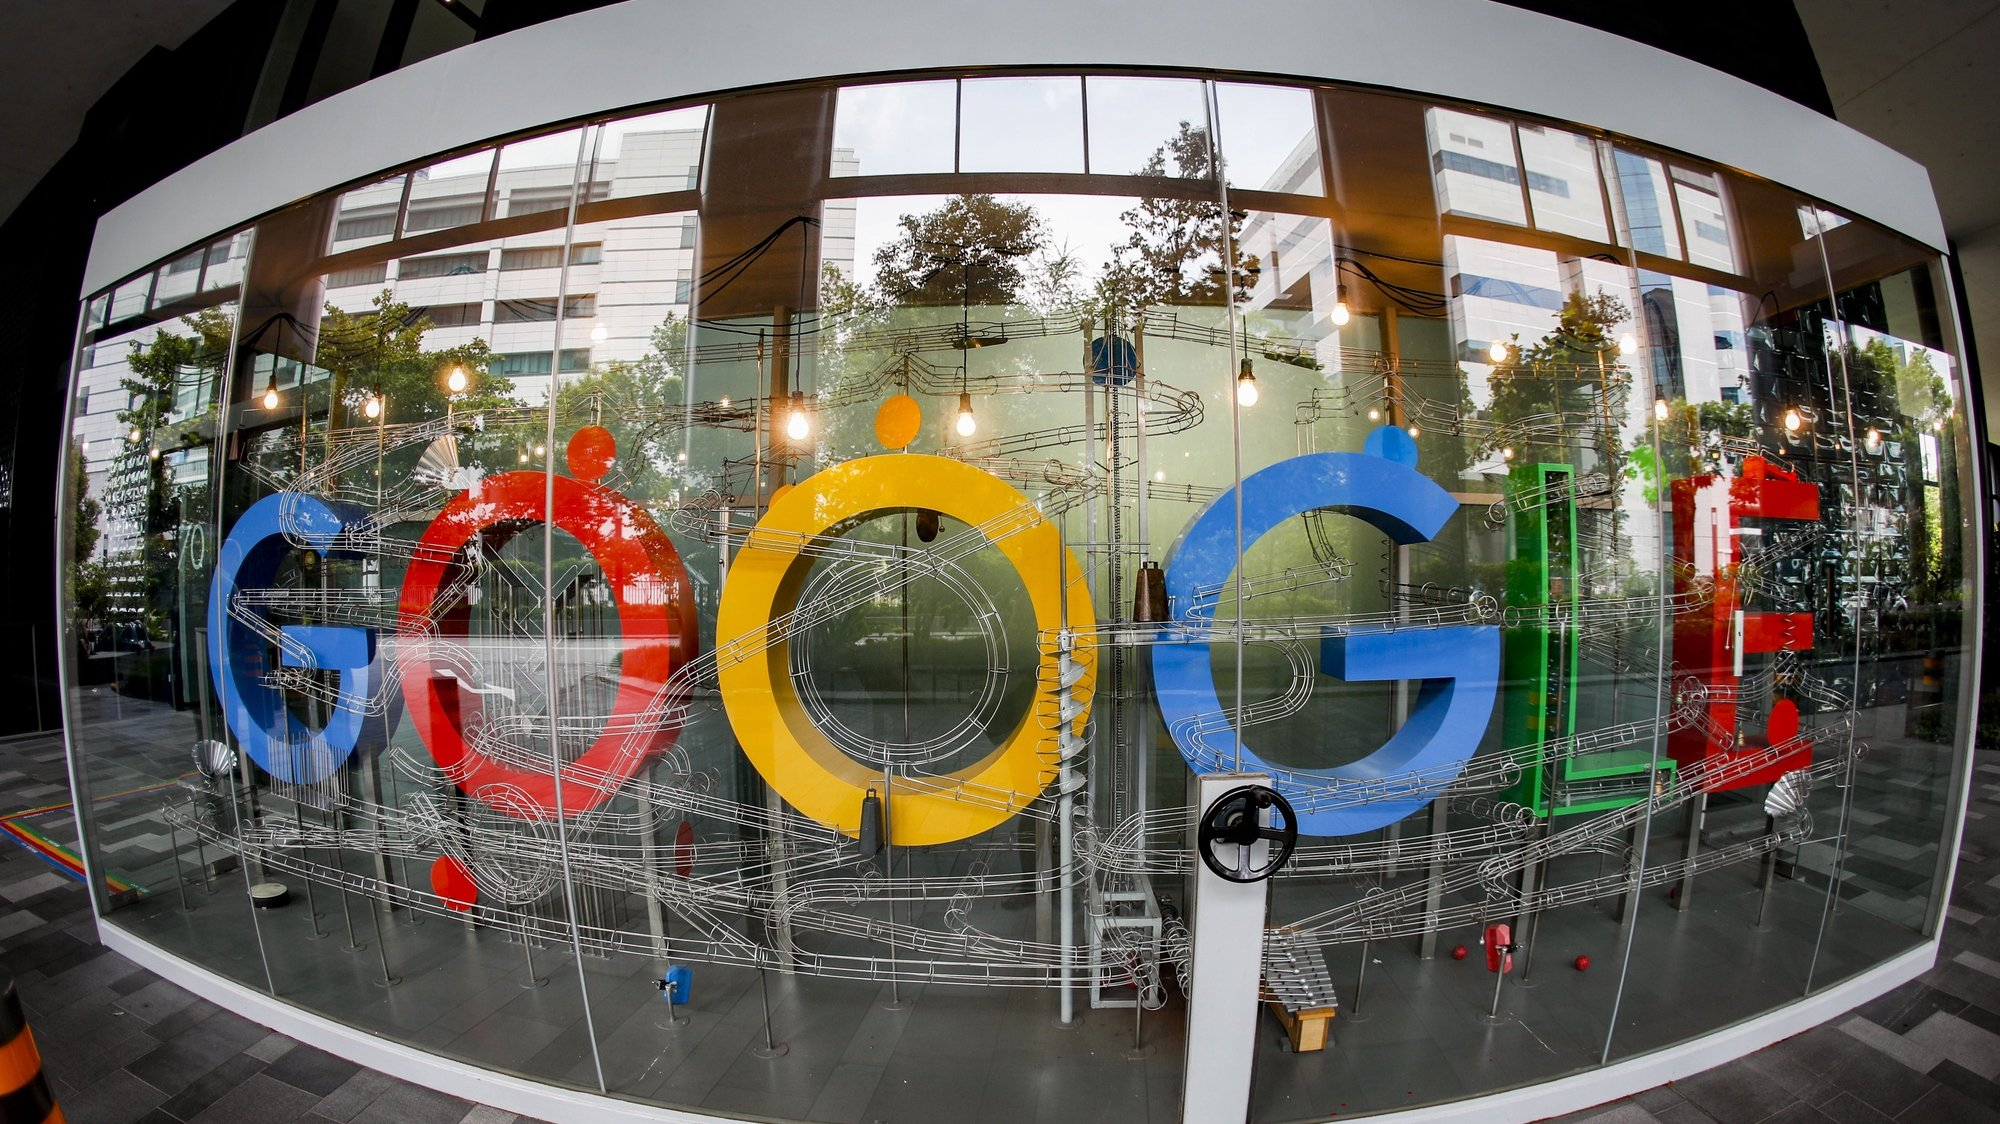 epa08873751 (FILE) A  picture made with a fisheye lens shows the Google logo in Singapore, 06 December 2019 (reissued 10 December 2020). According to media reports on 10 December 2020, French data privacy regulator CNIL will impose over 100 million euros fines on US companies Google and Amazon for breaching EU privacy data rules. According to media reports, Google will have to pay 100 million euros and Amazon 35 million euros fines.  EPA/WALLACE WOON *** Local Caption *** 55685412